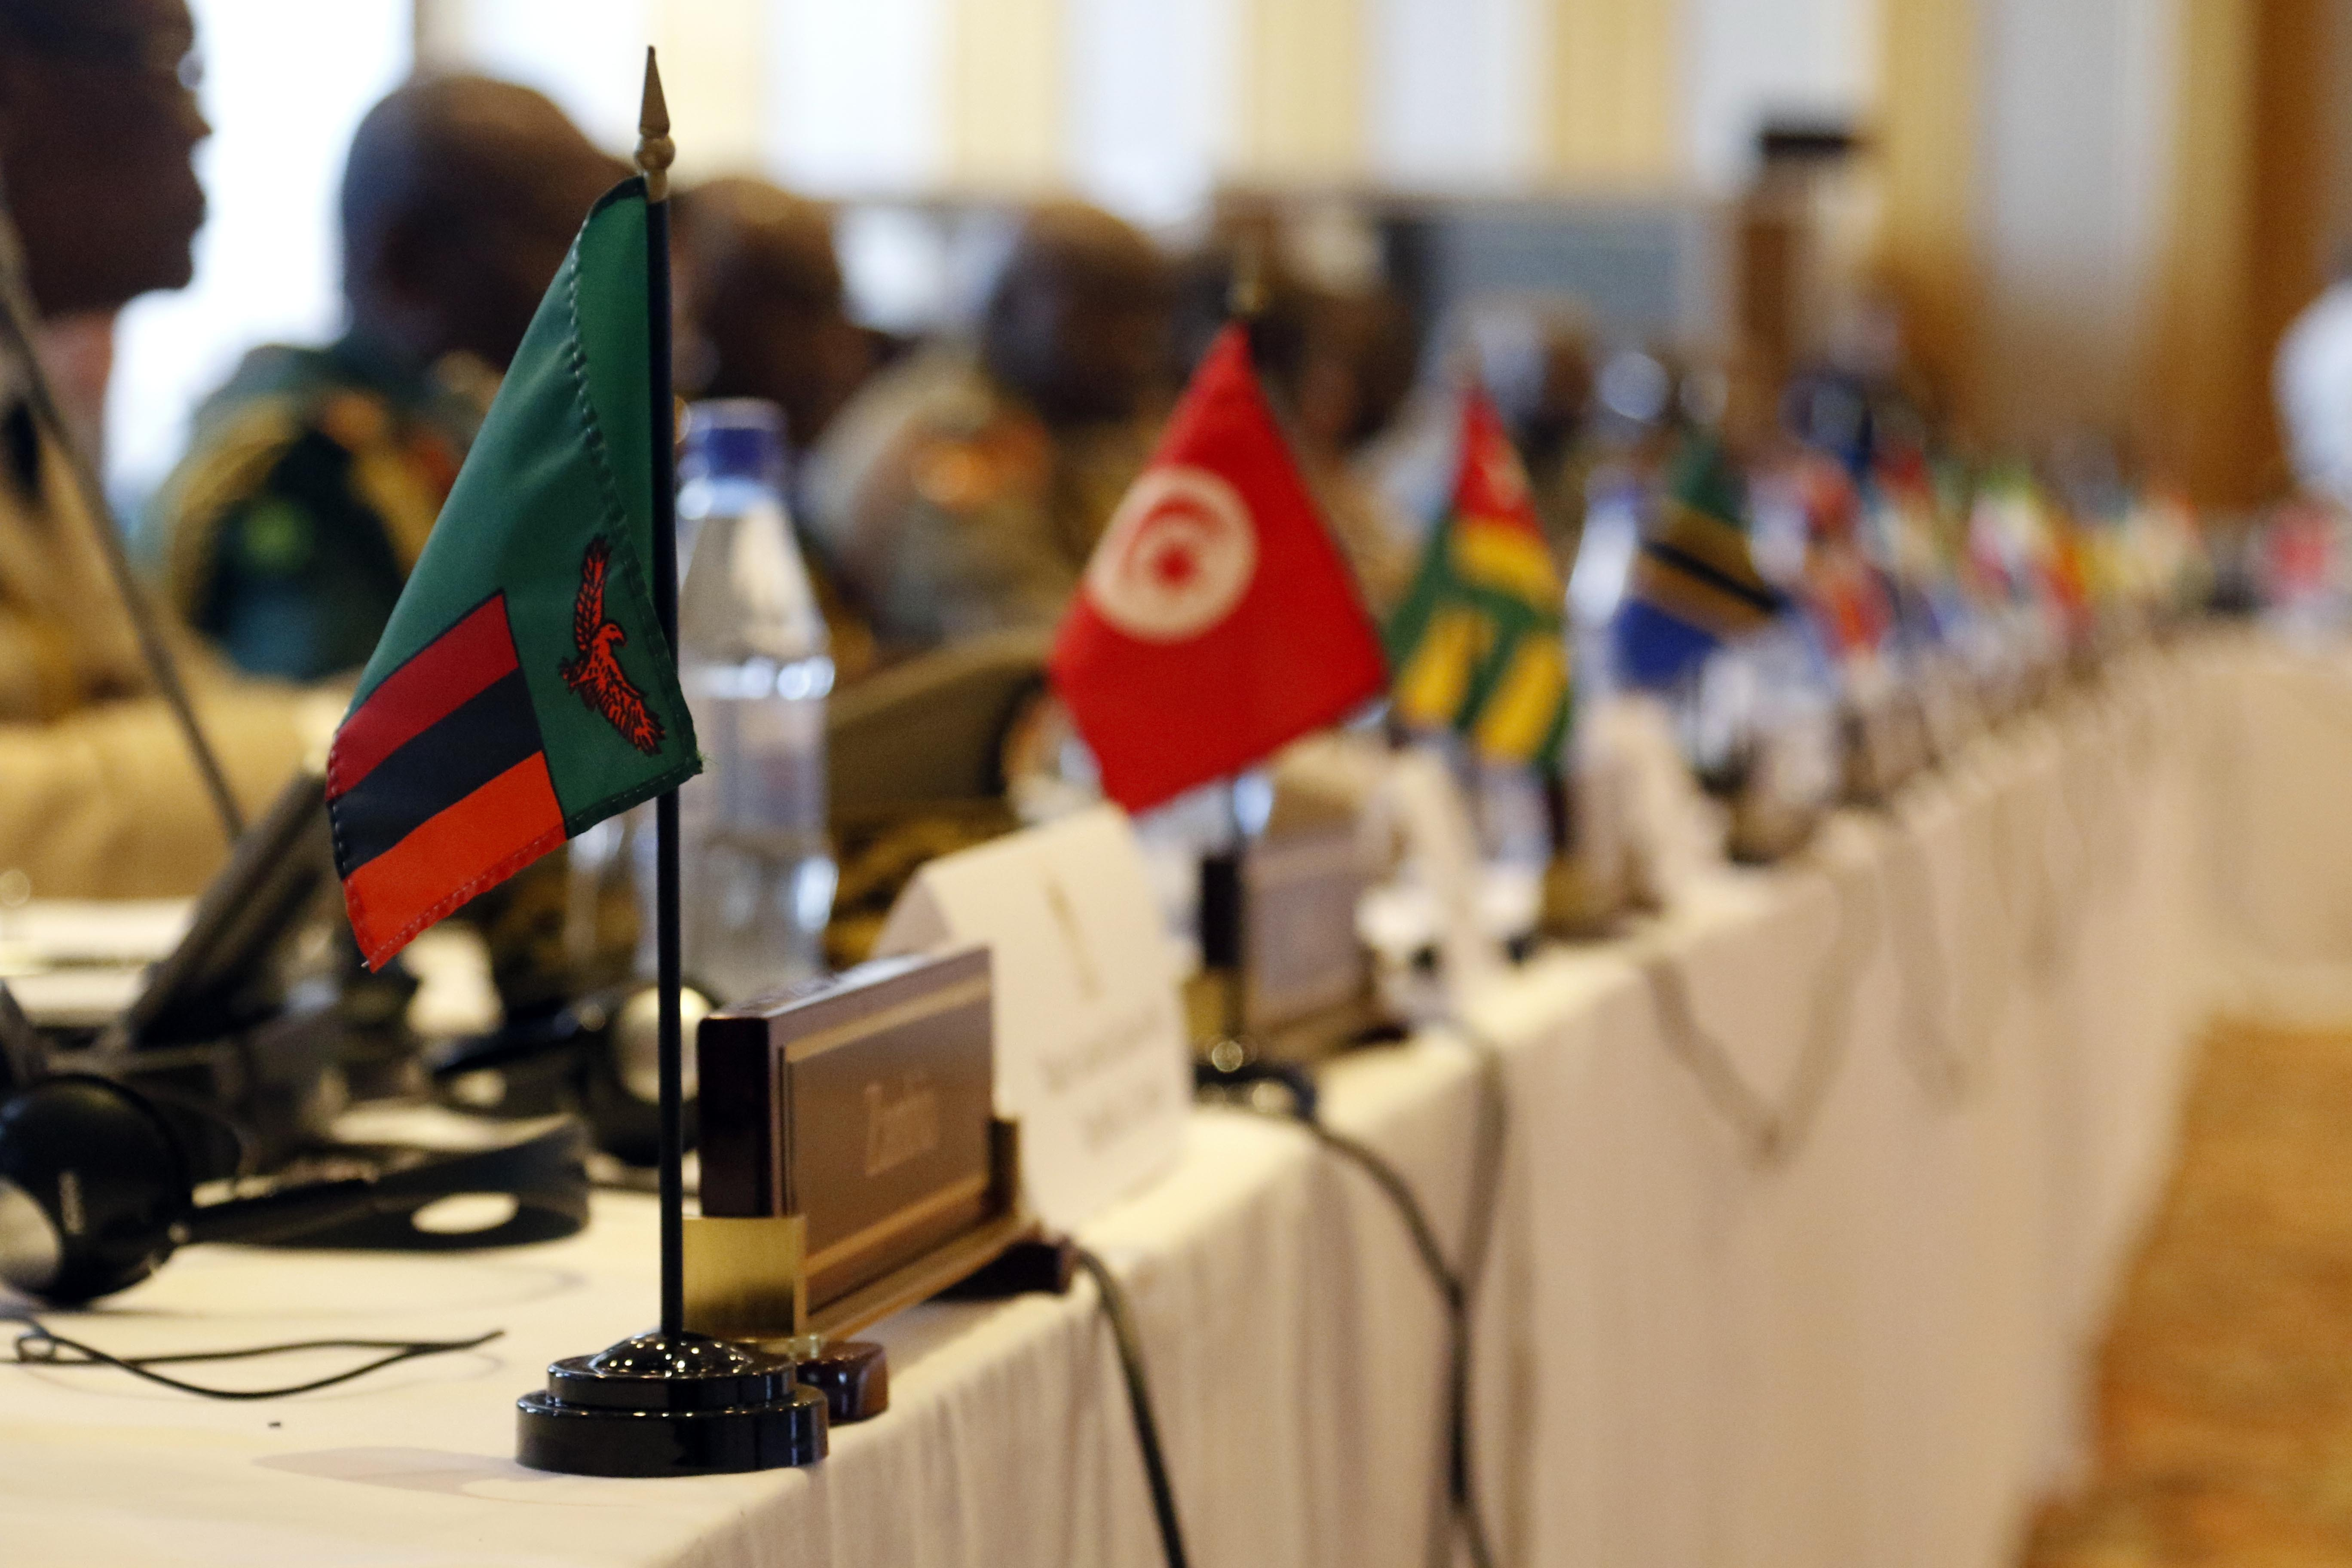 More than 40 nations from across the globe gather during the African Land Forces Summit at the Umodzi Business Park, Lilongwe, Malawi, May 8, 2017. ALFS is an annual, weeklong seminar bringing together land force chiefs from across Africa for candid dialog to discuss and develop cooperative solutions to regional and trans-regional challenges and threats.